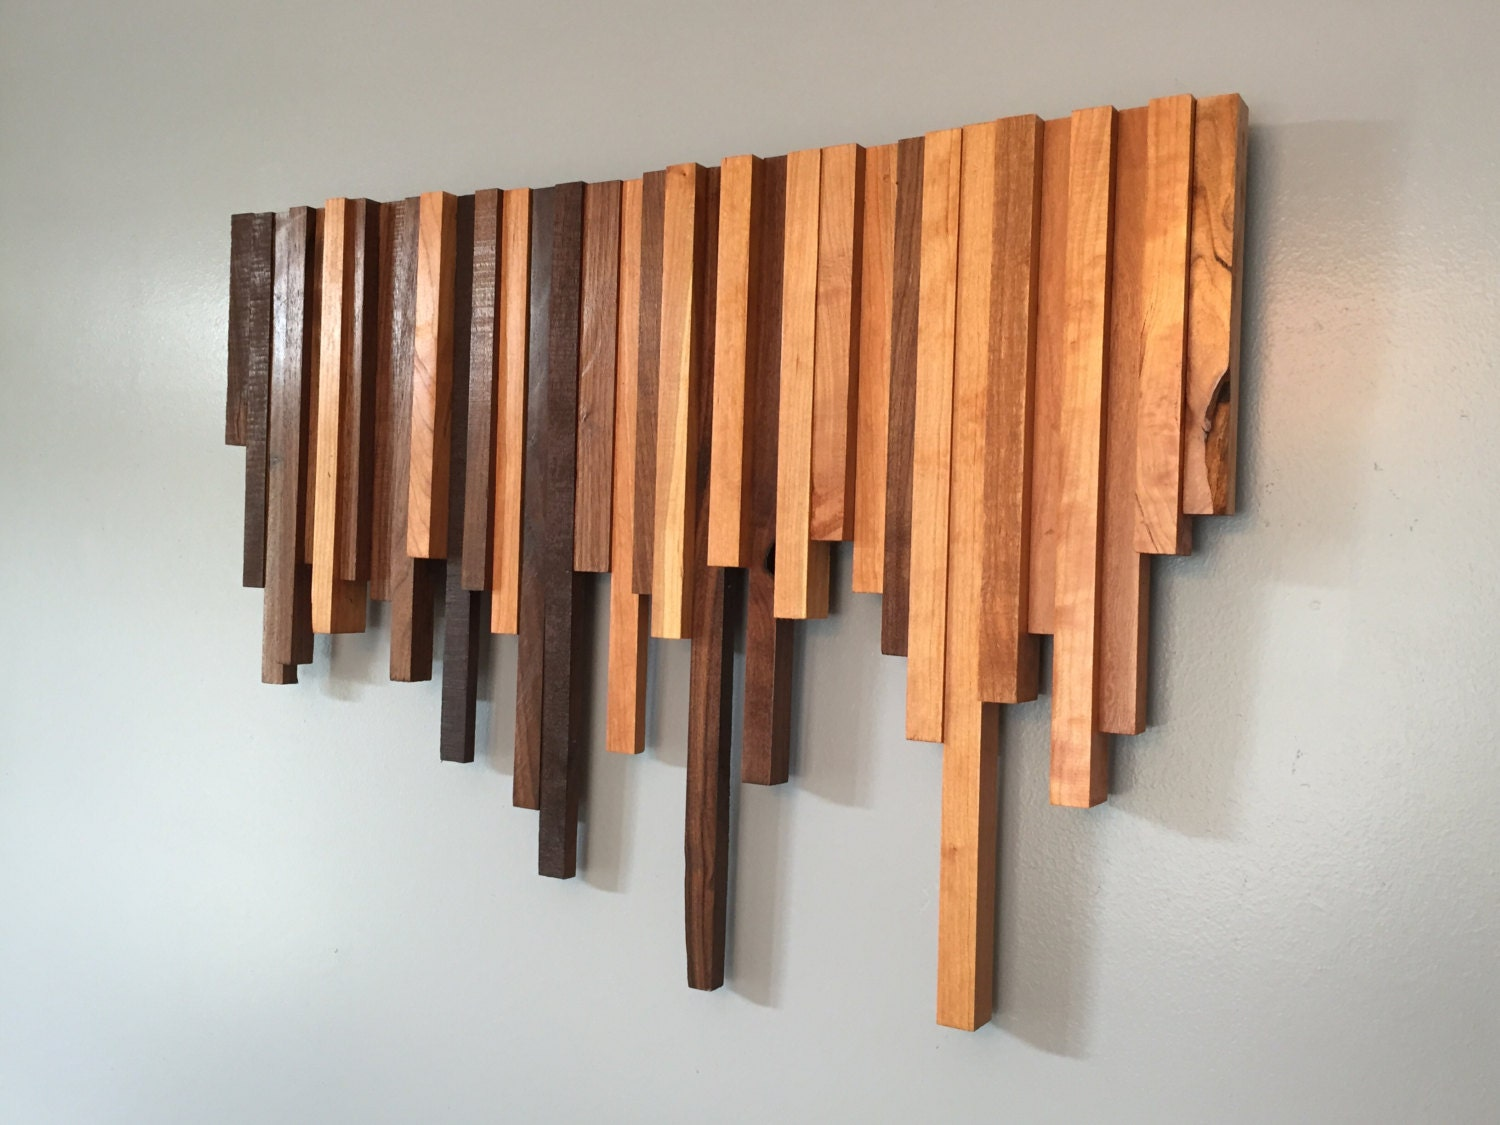 ... Decor - Wood Wall Hanging. 🔎zoom